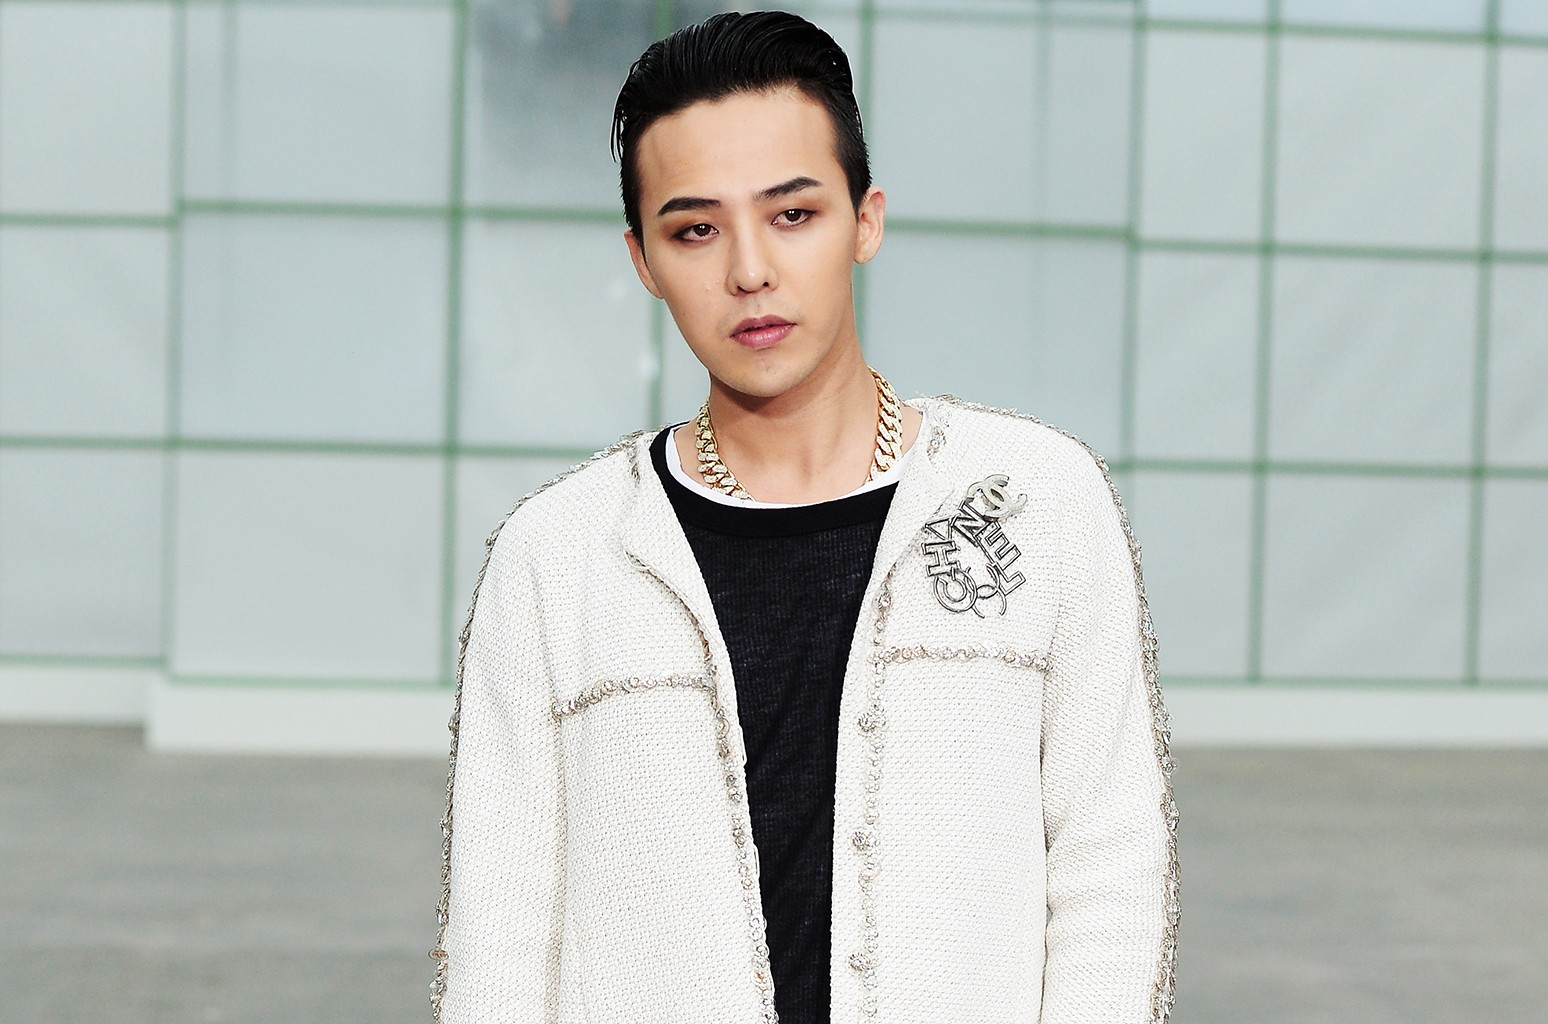 G-Dragon attends the Chanel show as part of Paris Fashion Week Haute-Couture Spring/Summer 2015 on Jan. 27, 2015 in Paris, France.